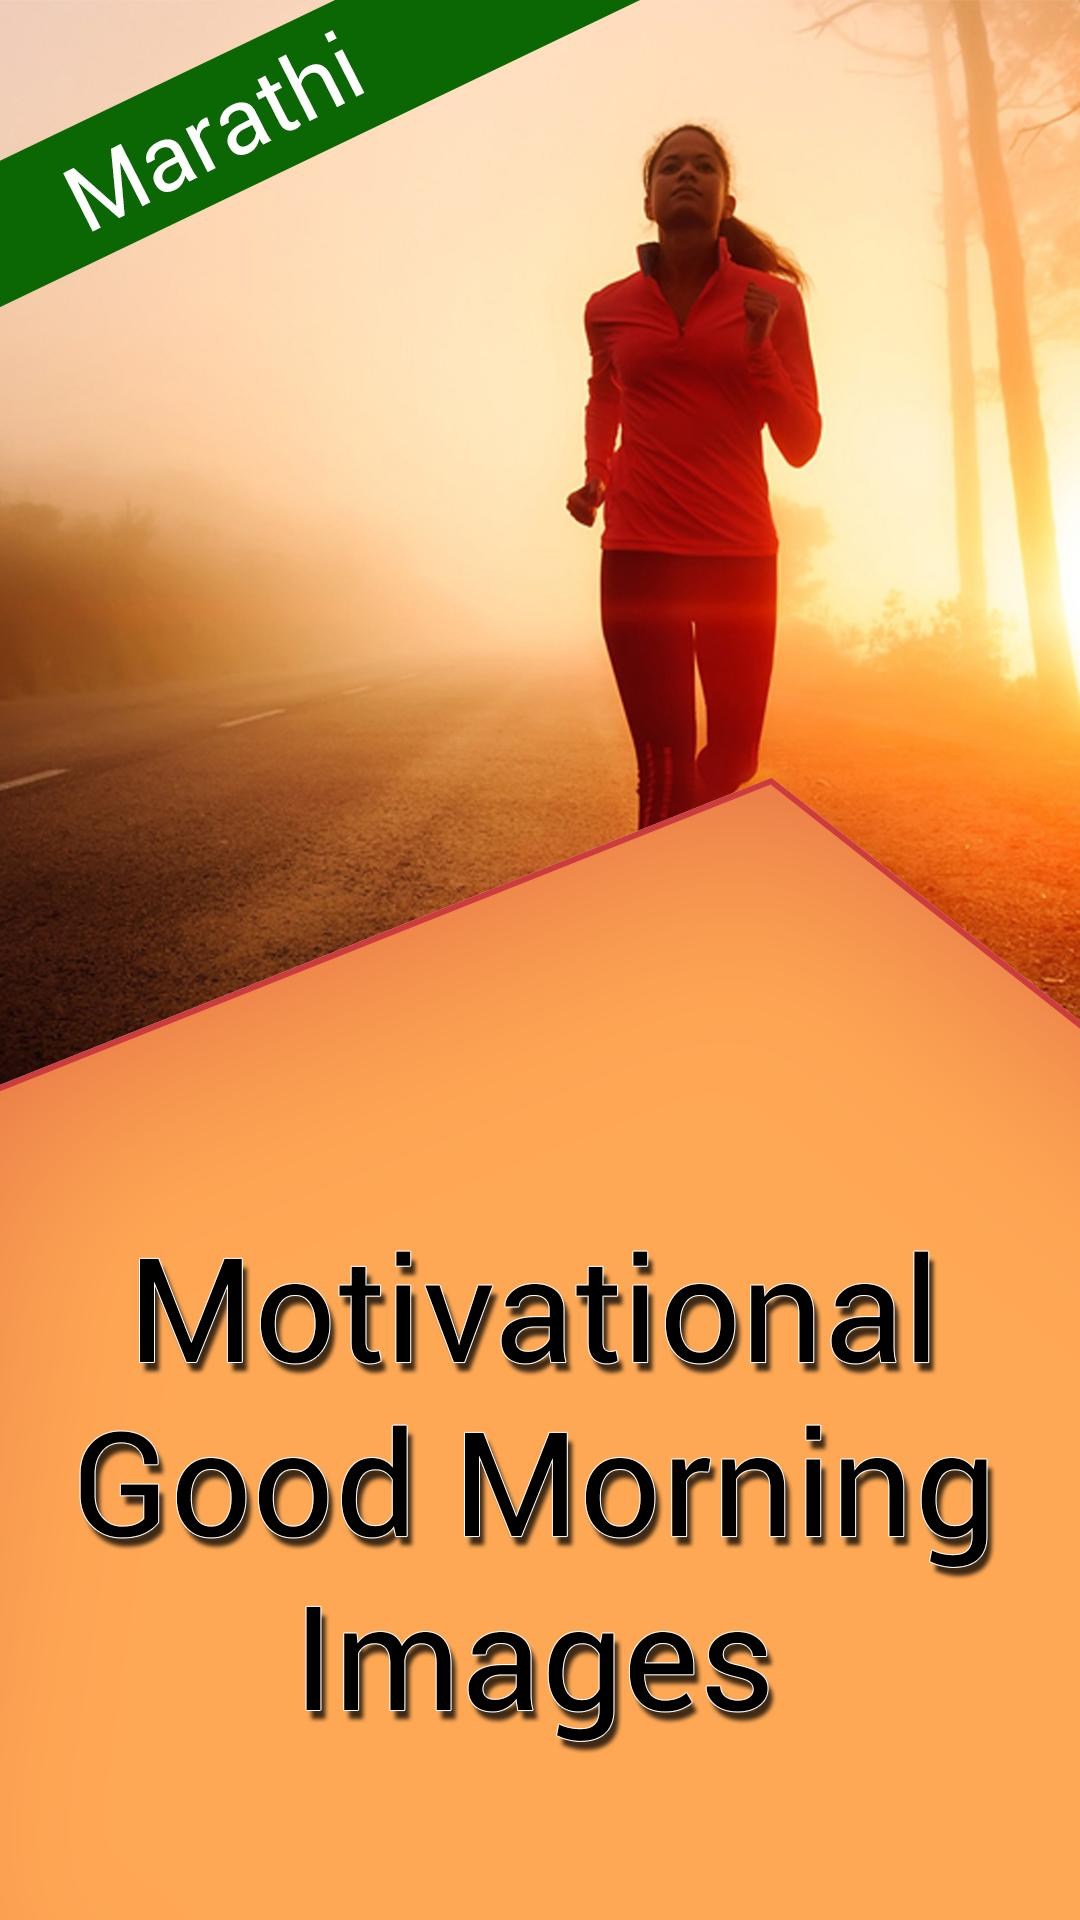 Motivational Good morning images in Marathi for Android